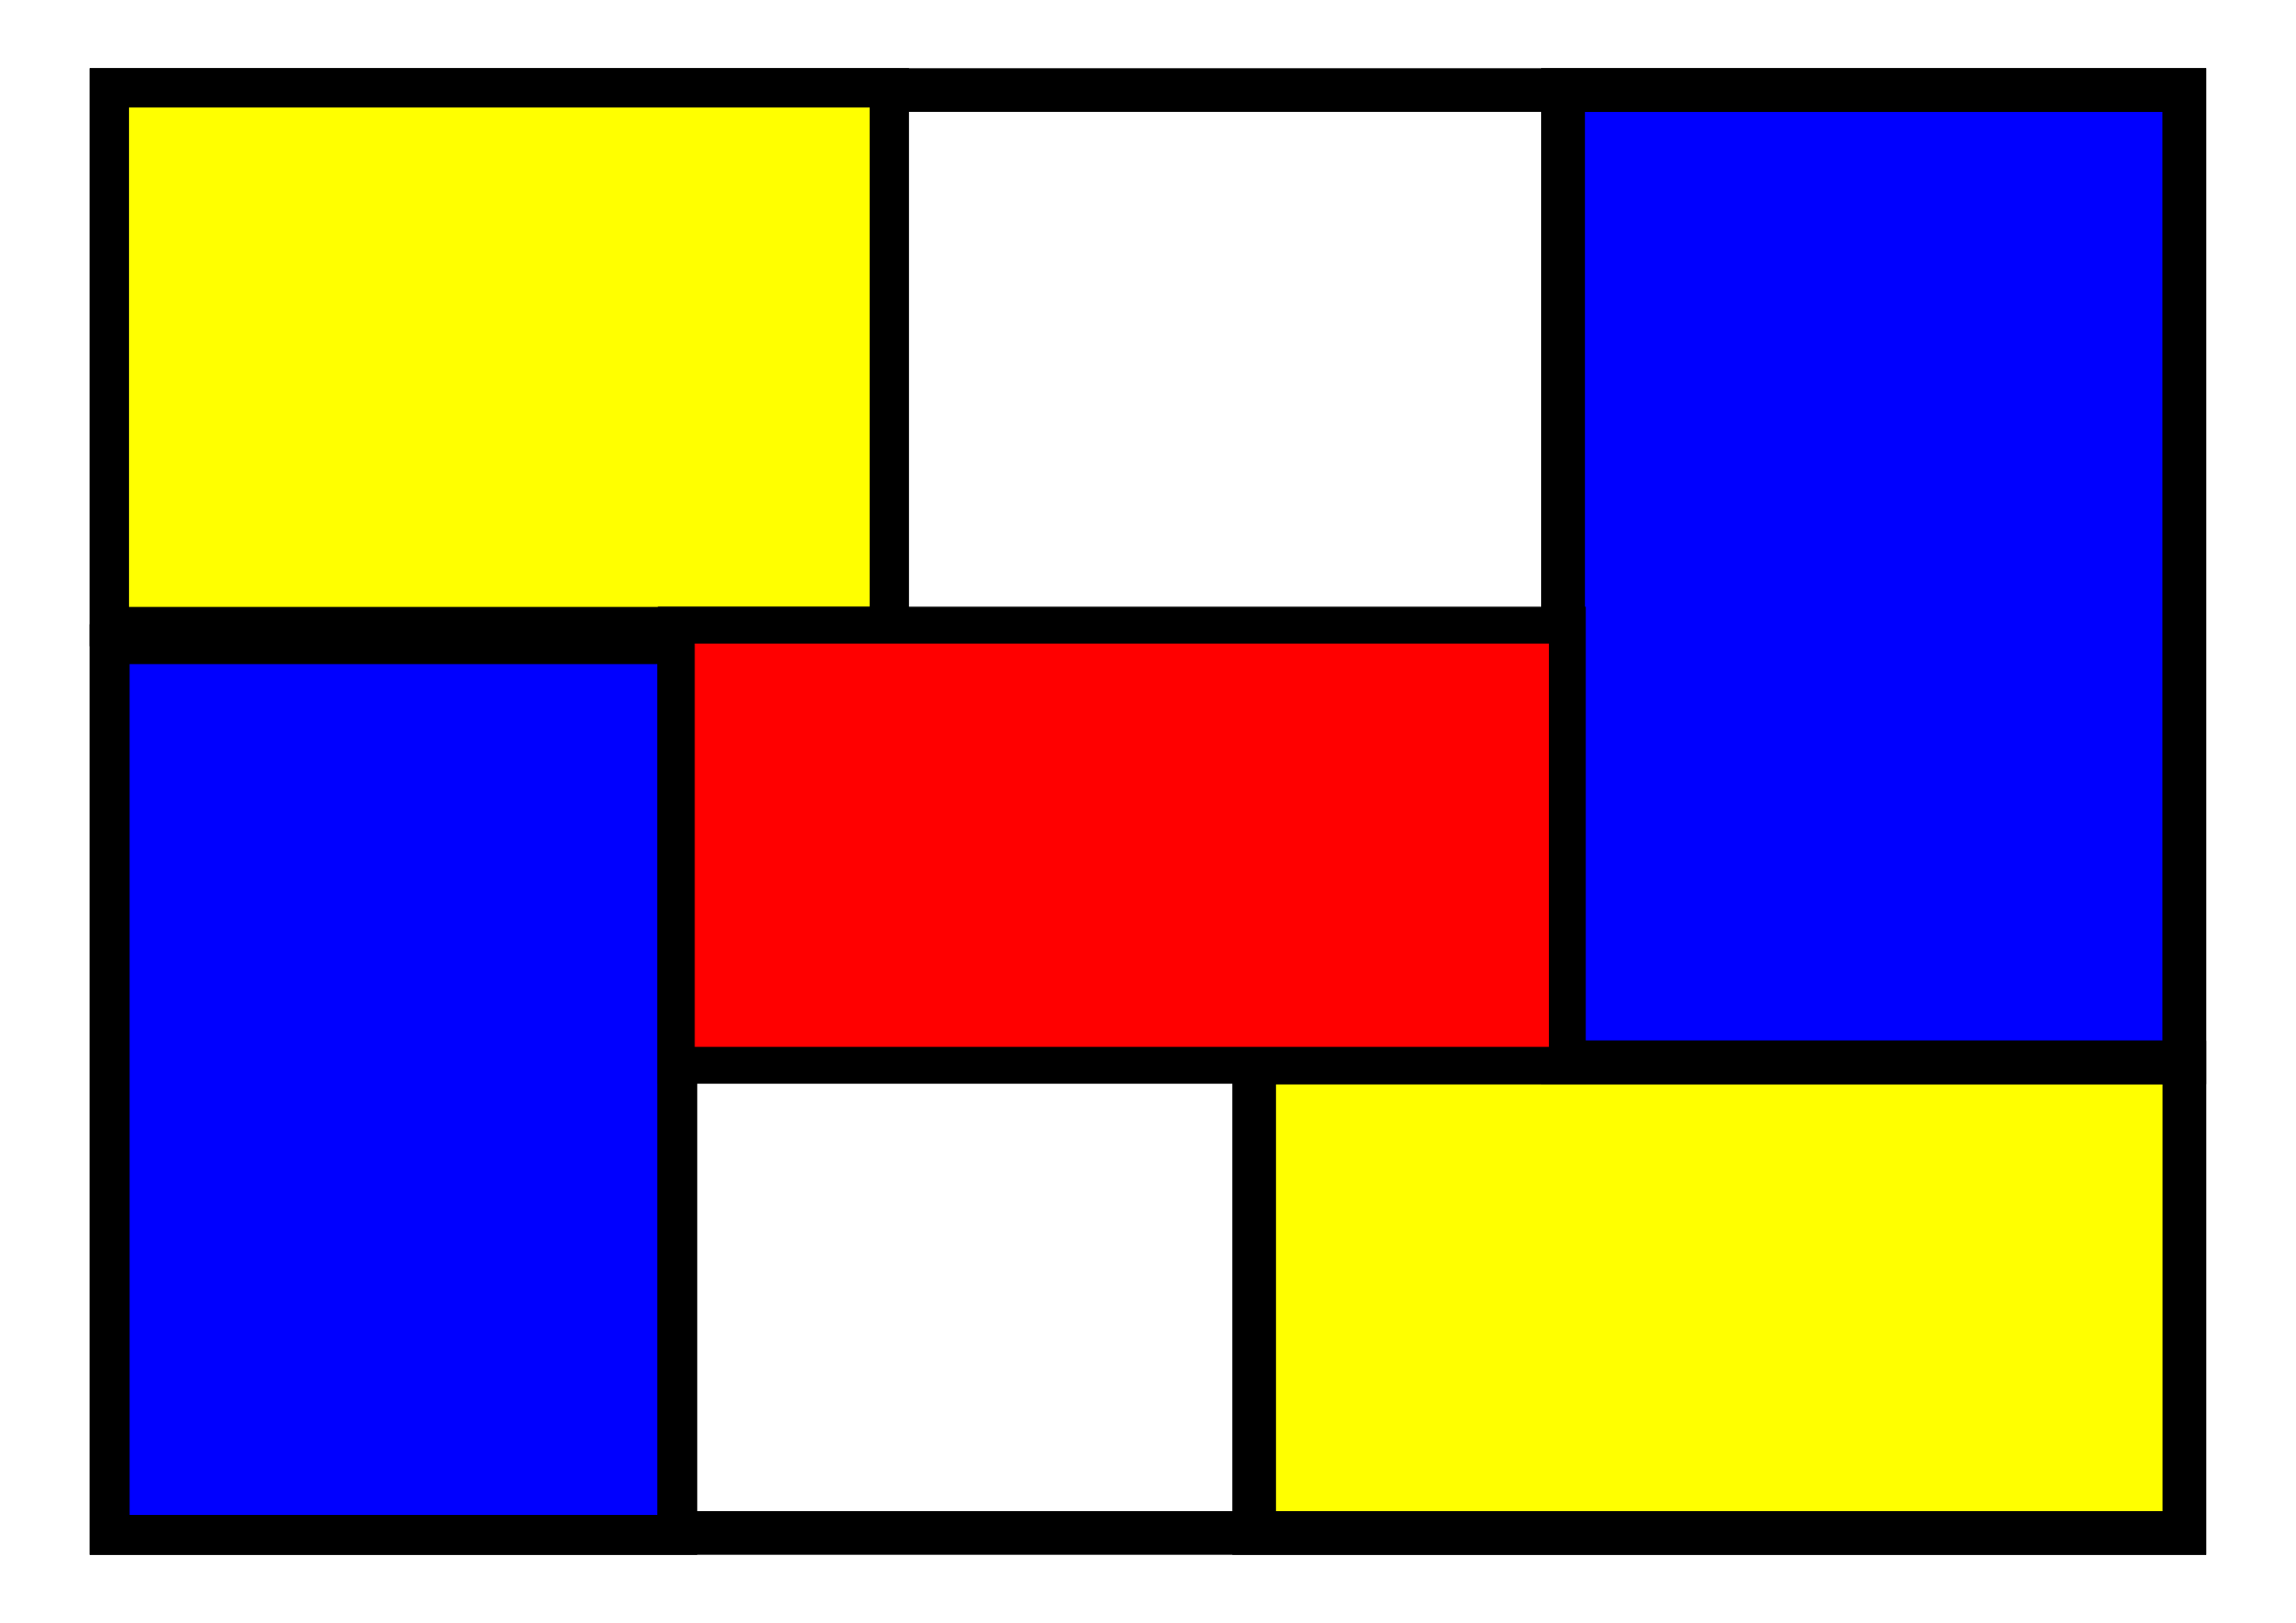 clipart mondrian office clip art collection office clip art free